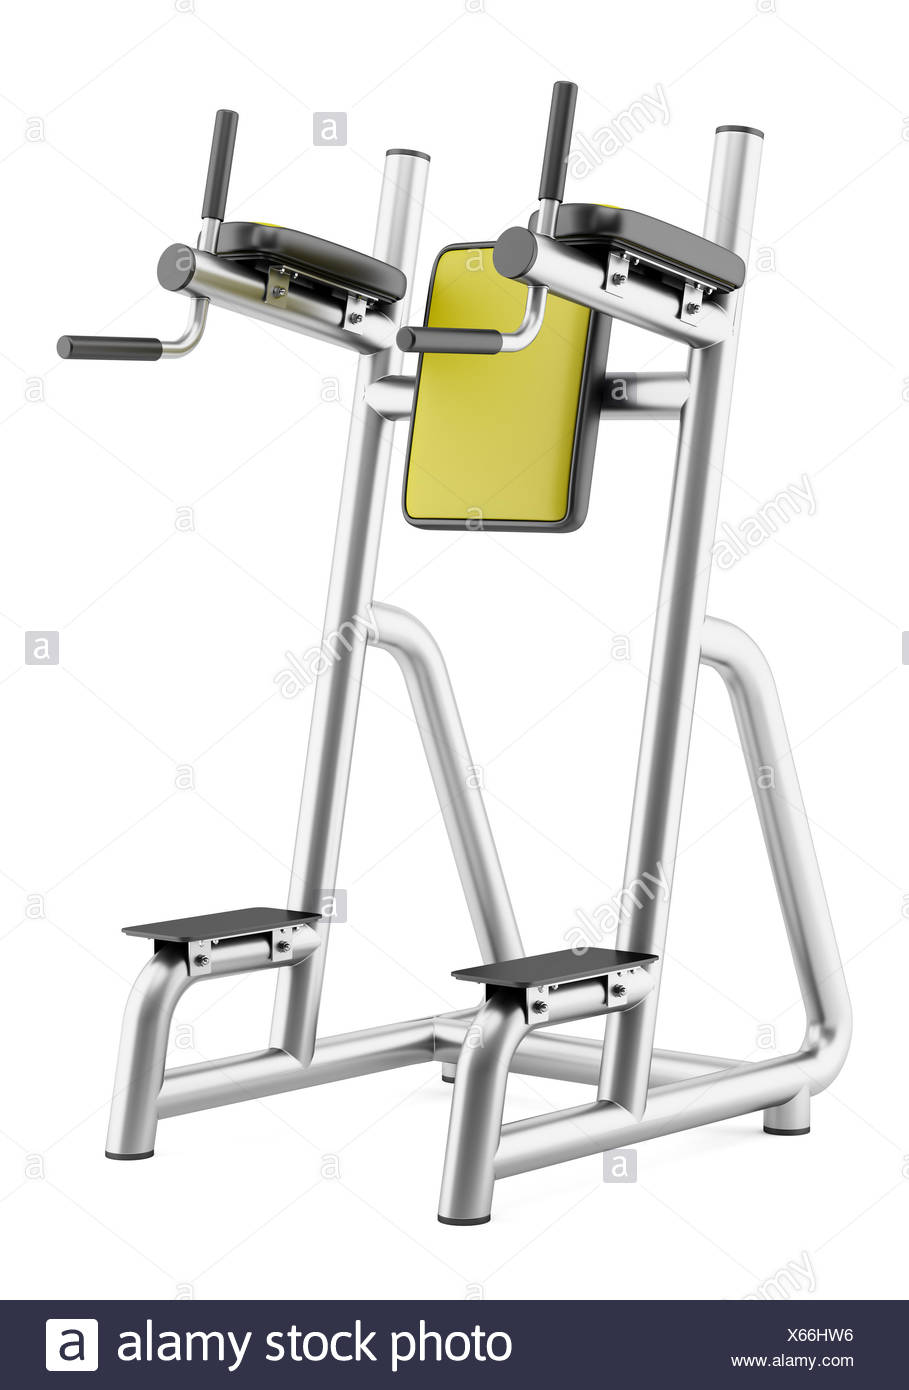 Roman Chair Gym Roman Chair Isolated On White Background Stock Photo